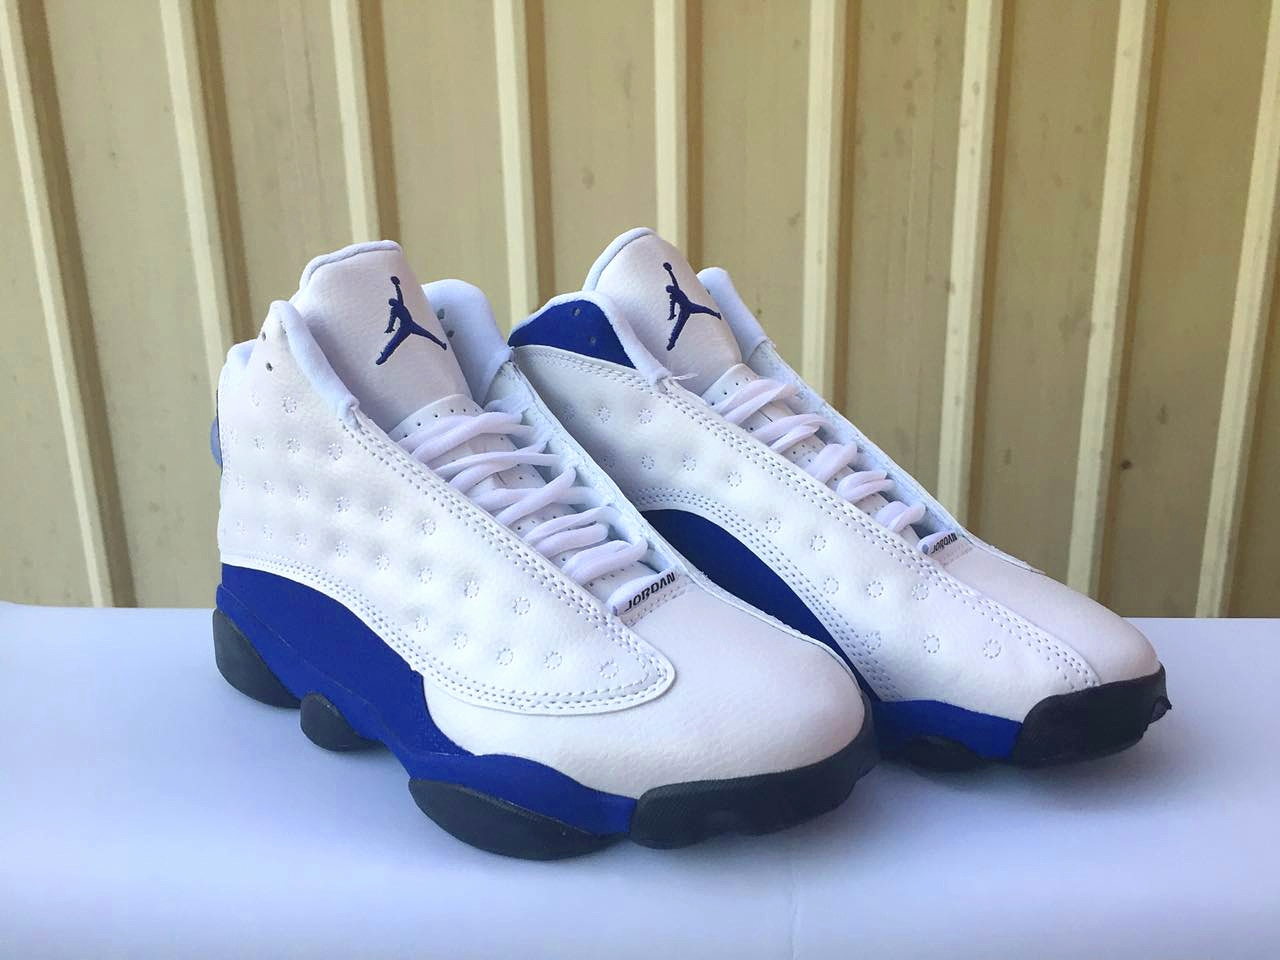 2017 Jordan 13 White Blue Black Shoes